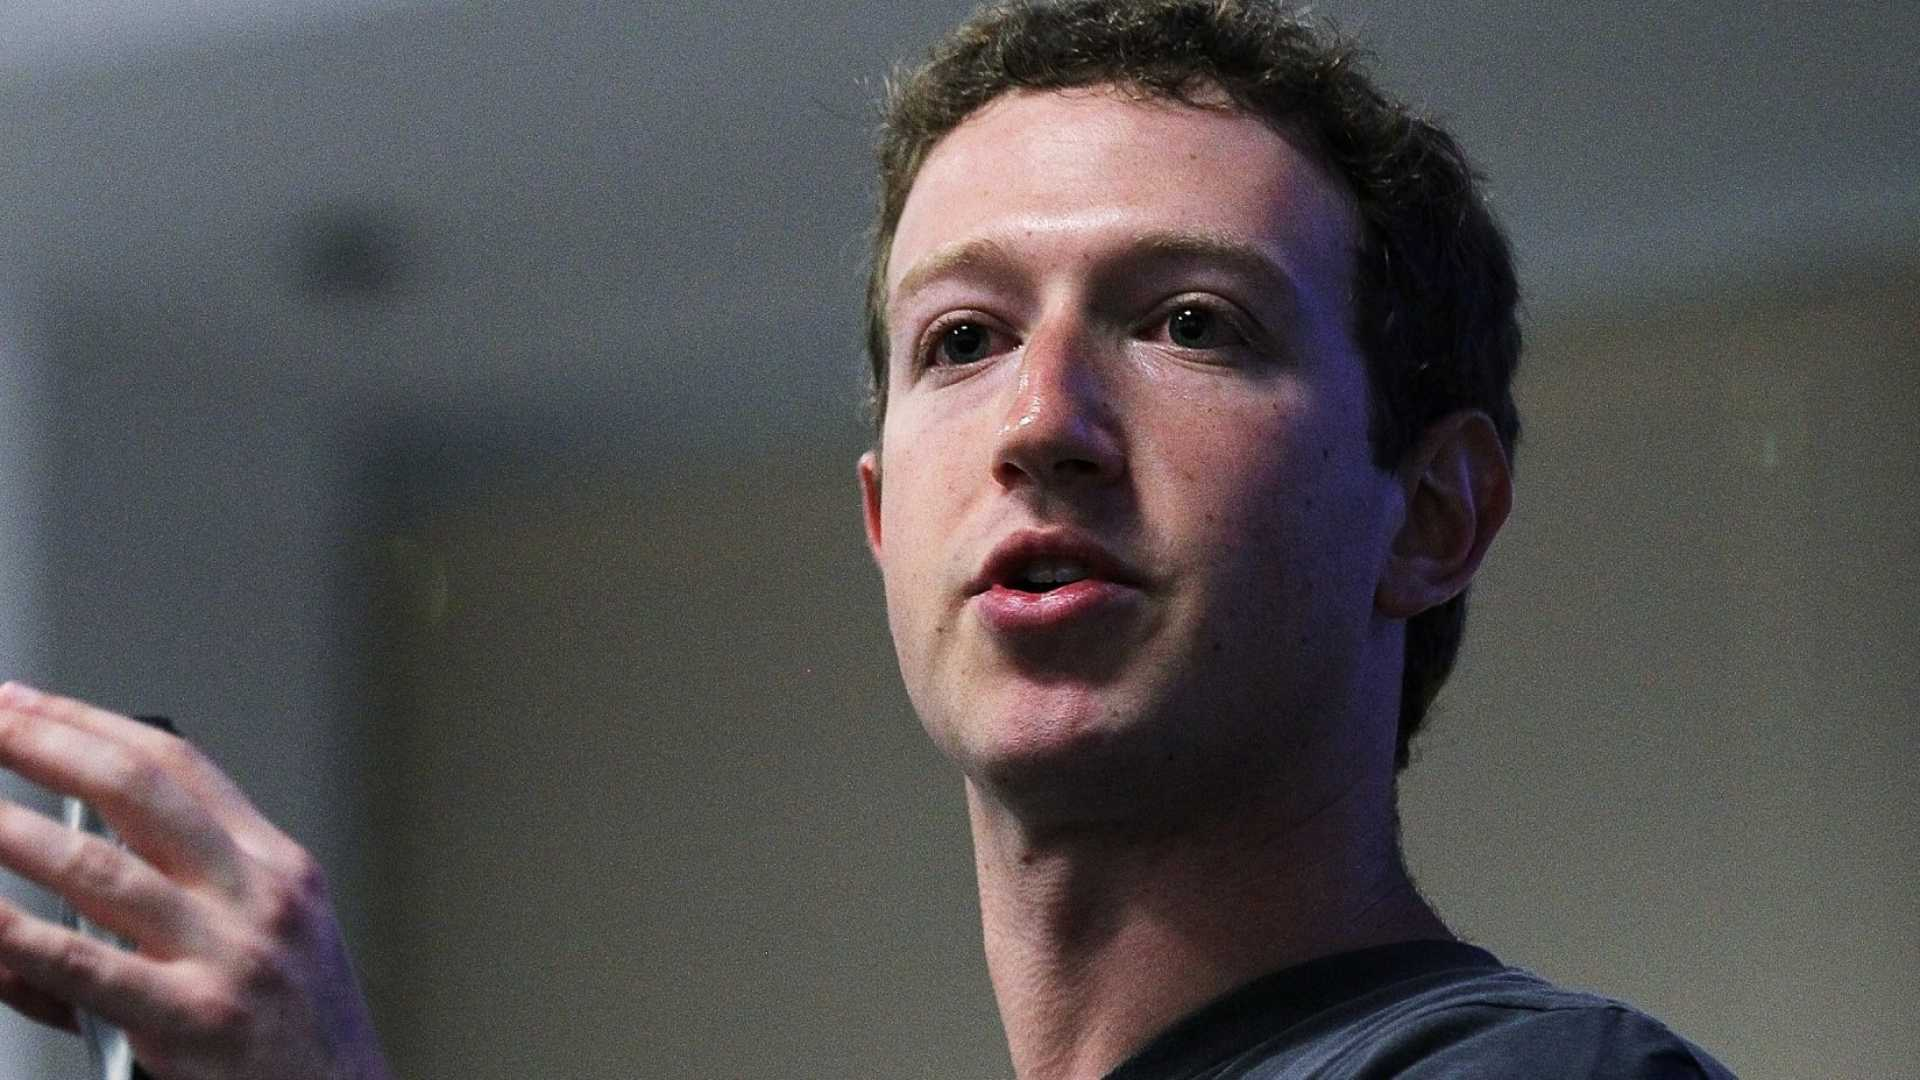 Facebook May Owe $5 Billion in Unpaid Taxes. Plus Interest